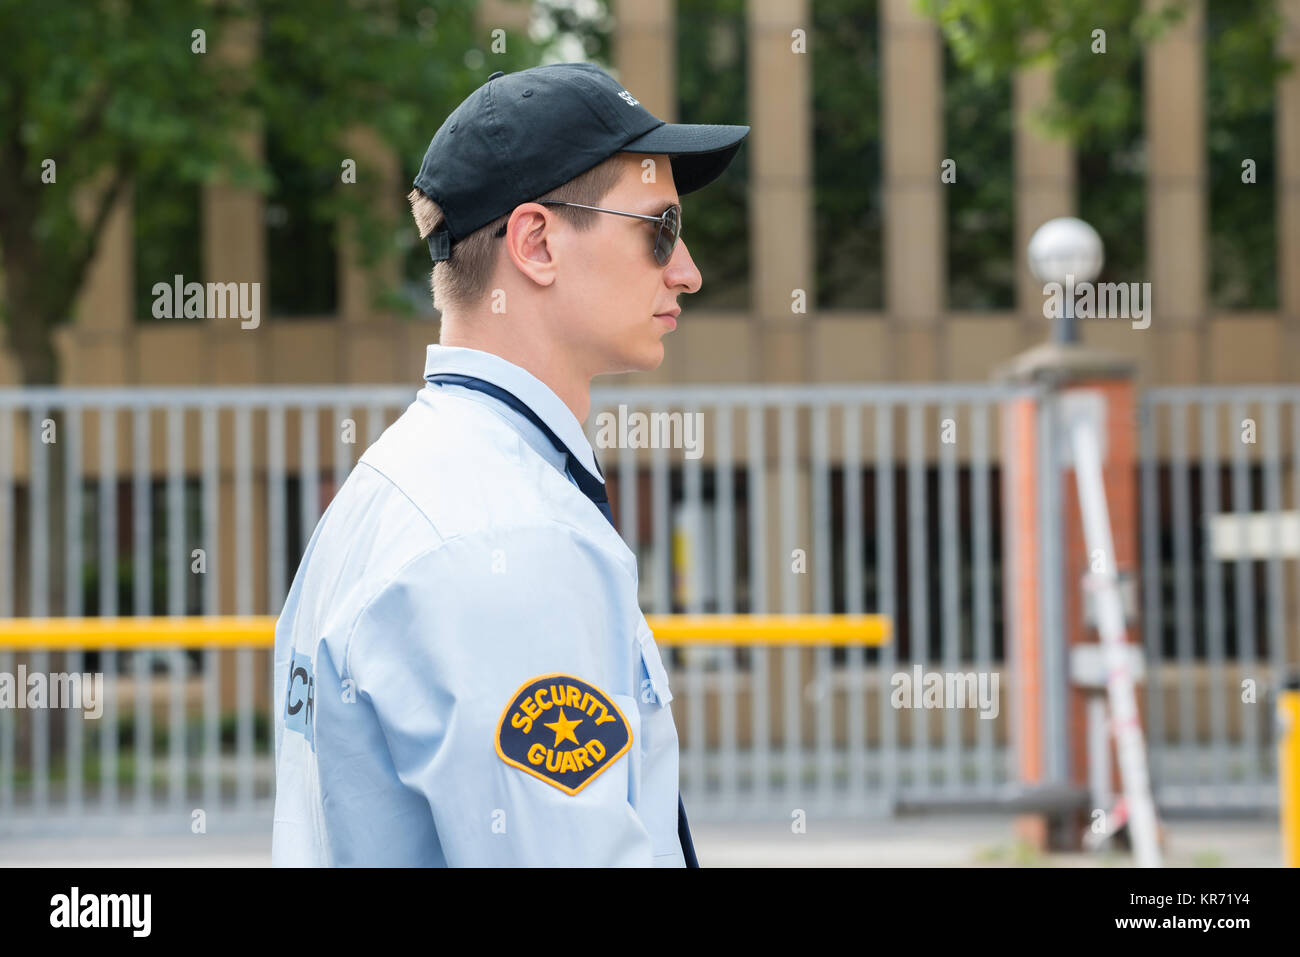 Young Male Security Guard In Uniform - Stock Image